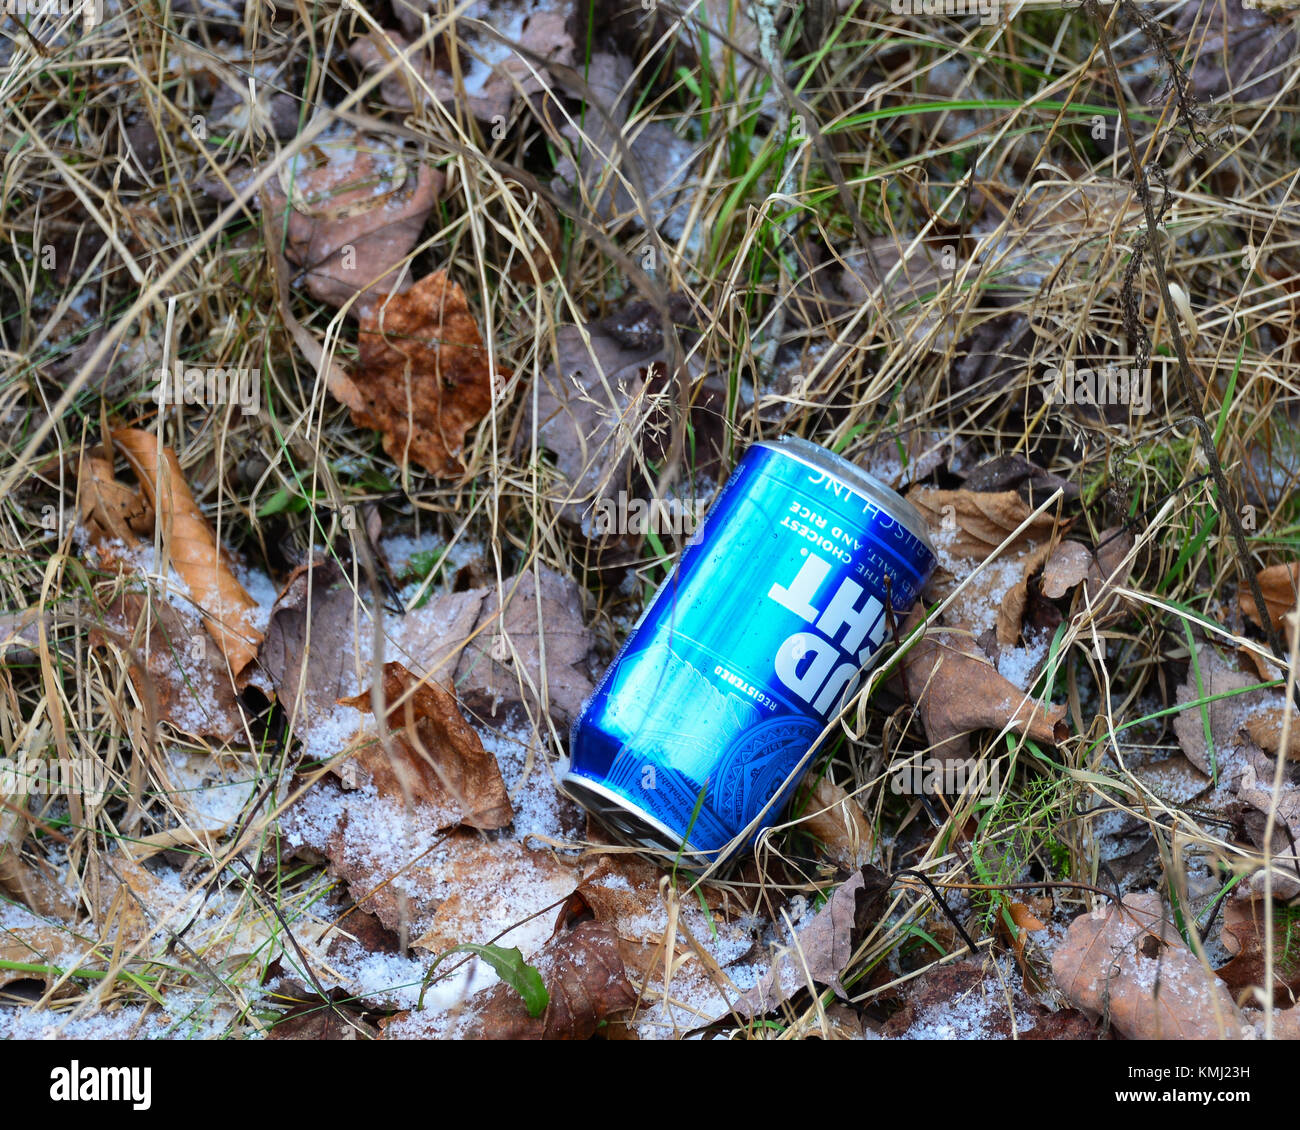 Discarded blue beer can on the side of a forest road in the Adirondack Mountains, NY. - Stock Image